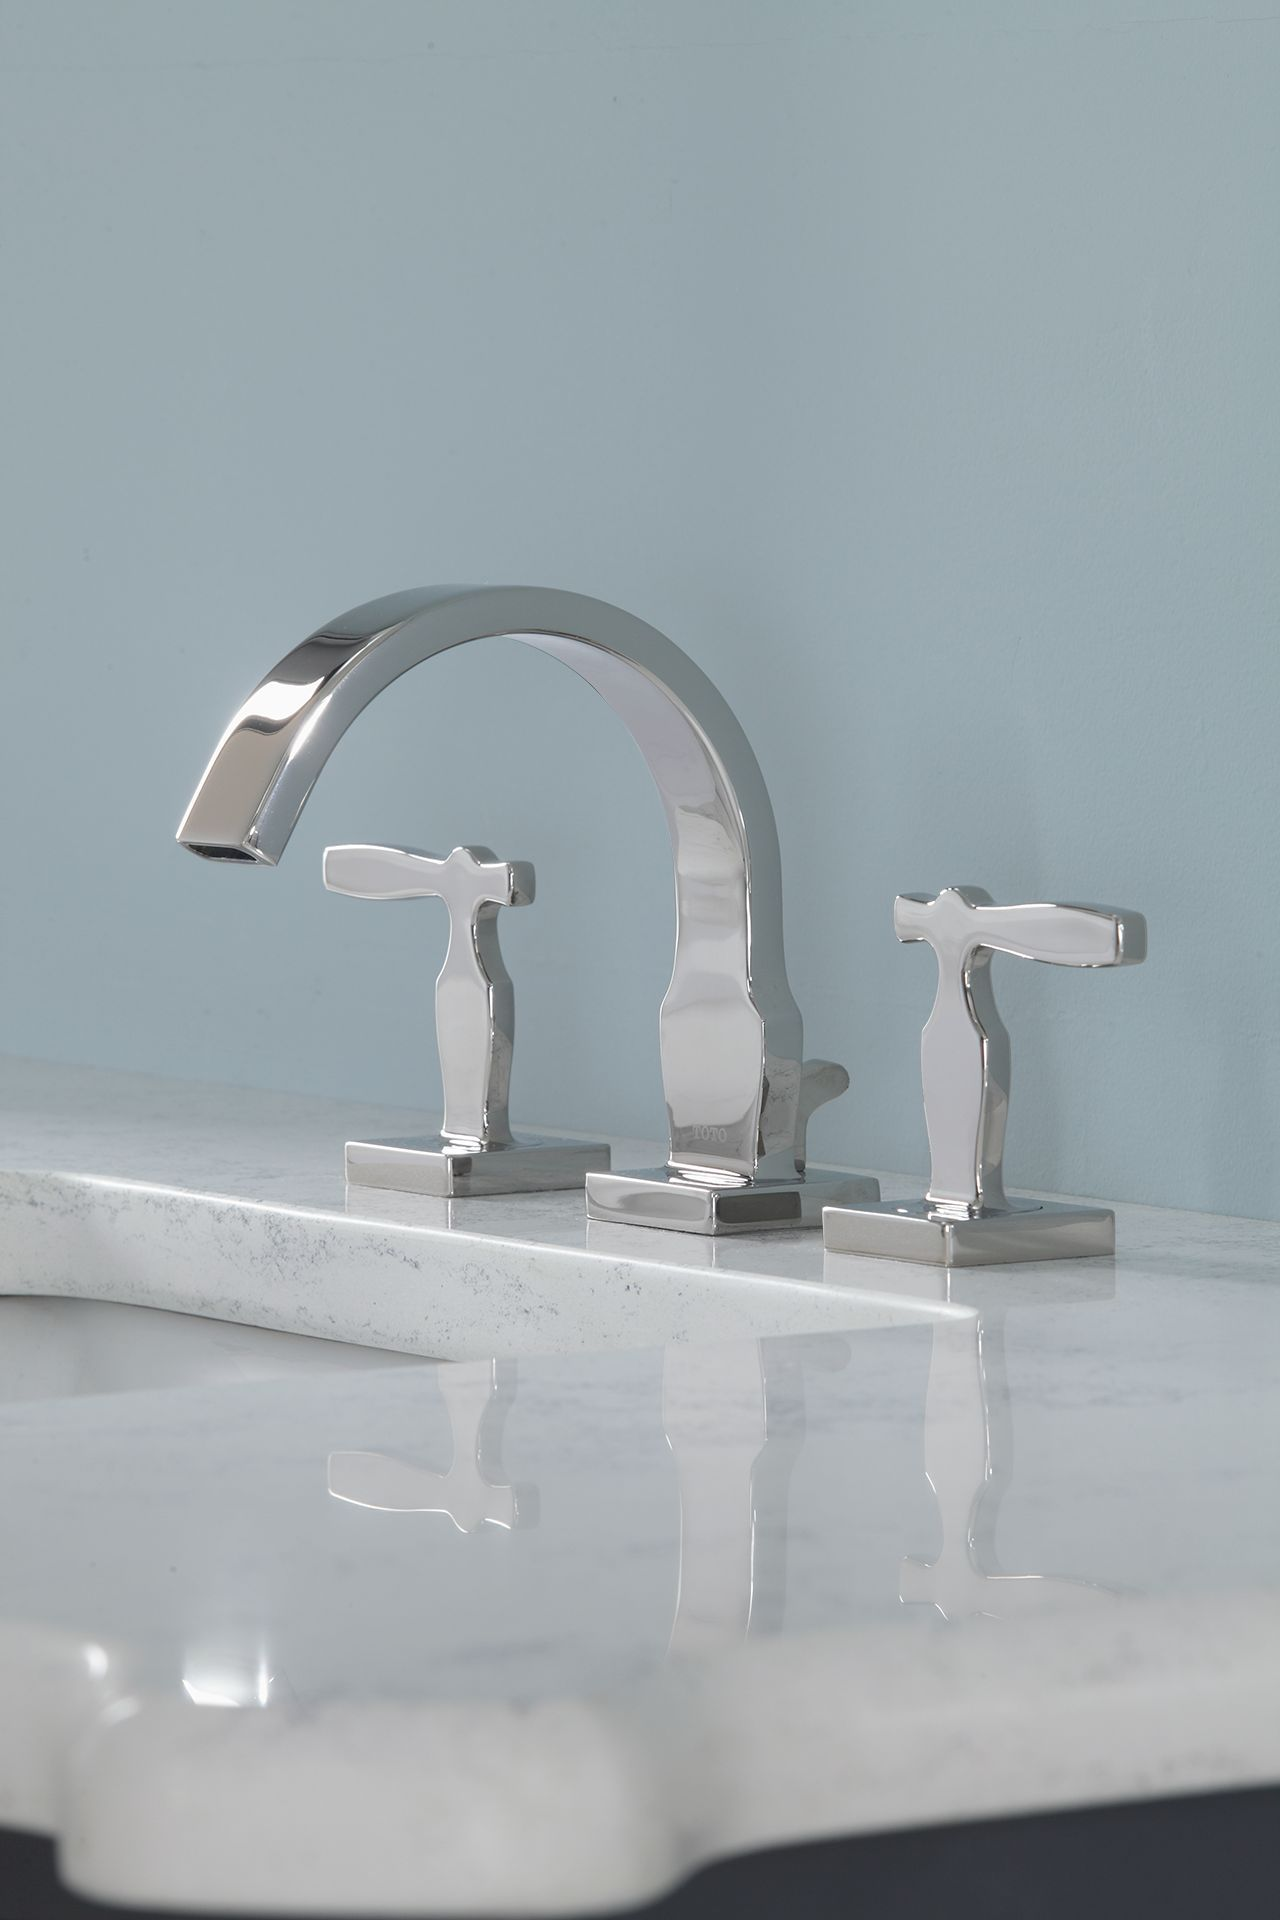 Fine Ada Compliant Faucets Images - Faucet Collections - thoughtfire ...